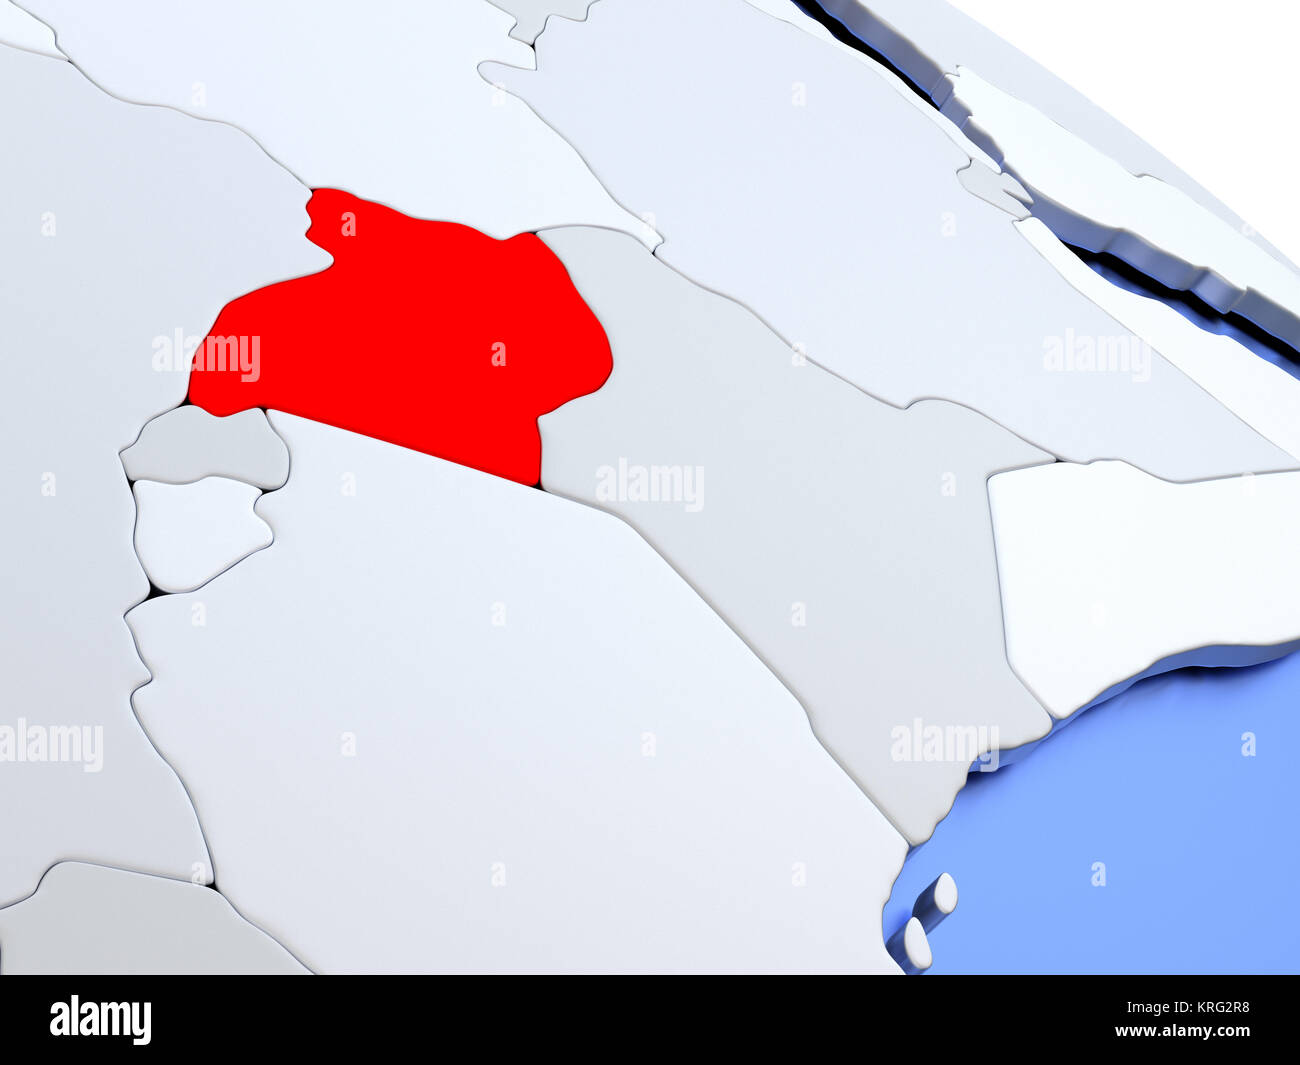 Uganda on world map Stock Photo: 169383852 - Alamy